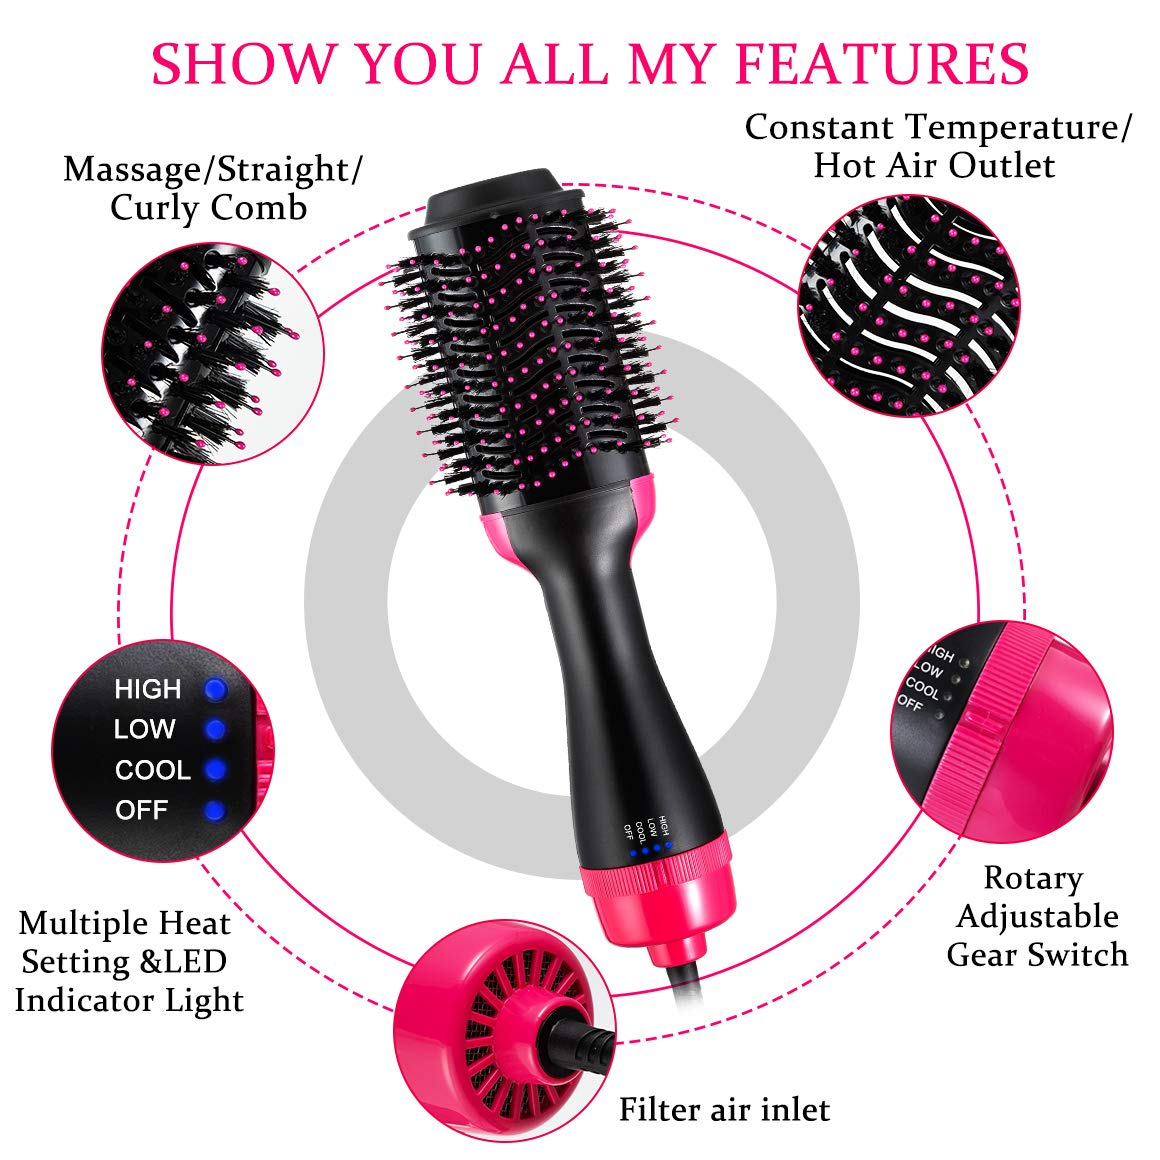 One Step Hair Dryer & Volumizer, Hot Air Brush All In One Hair Brush and Dryer Professional Negative Ion Hair Hot Comb, Black by Gelma (Image #3)